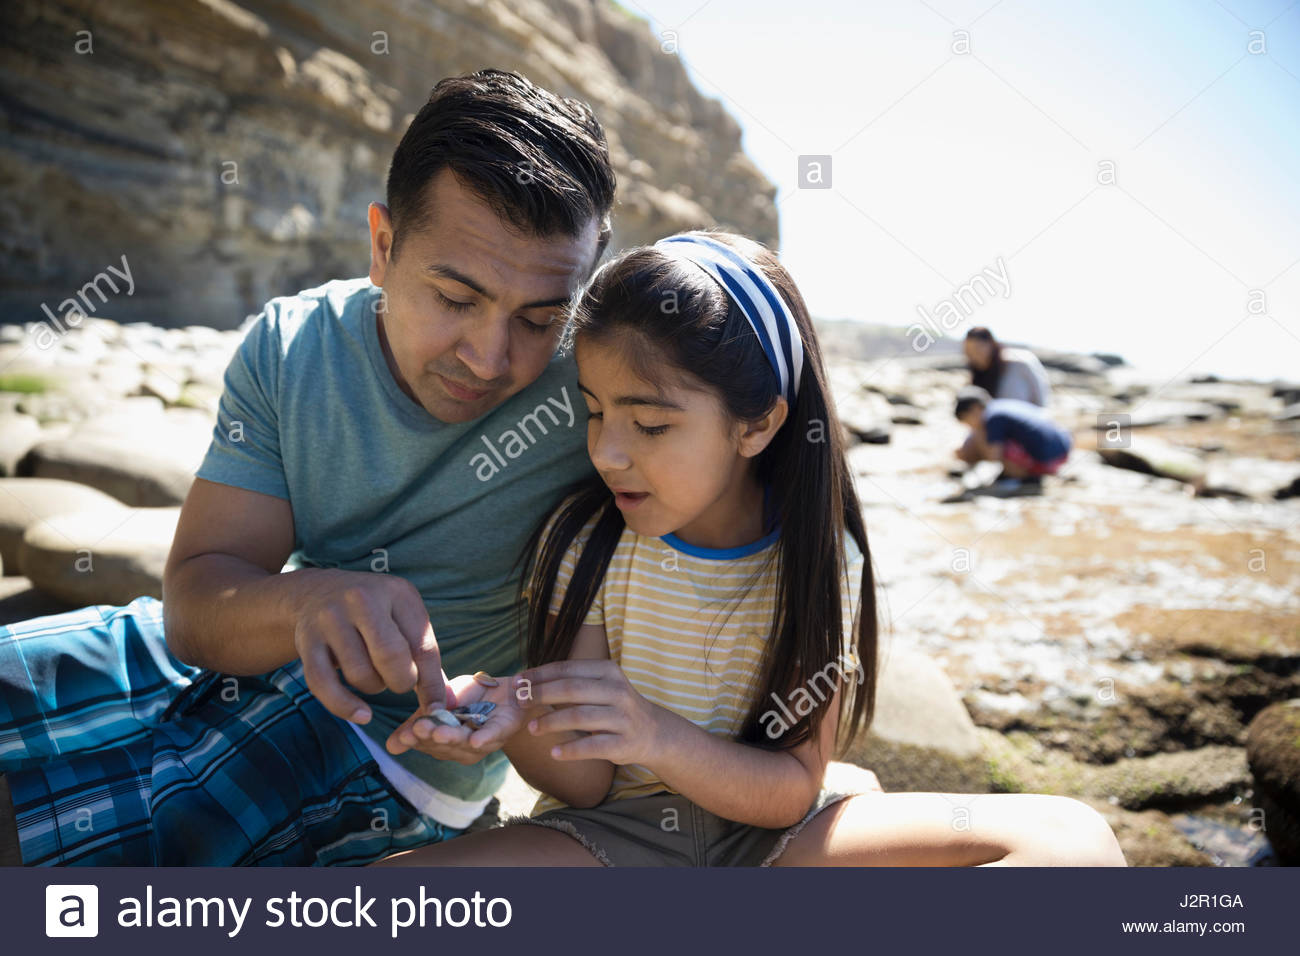 Latino father and daughter looking at rocks on sunny beach - Stock Image